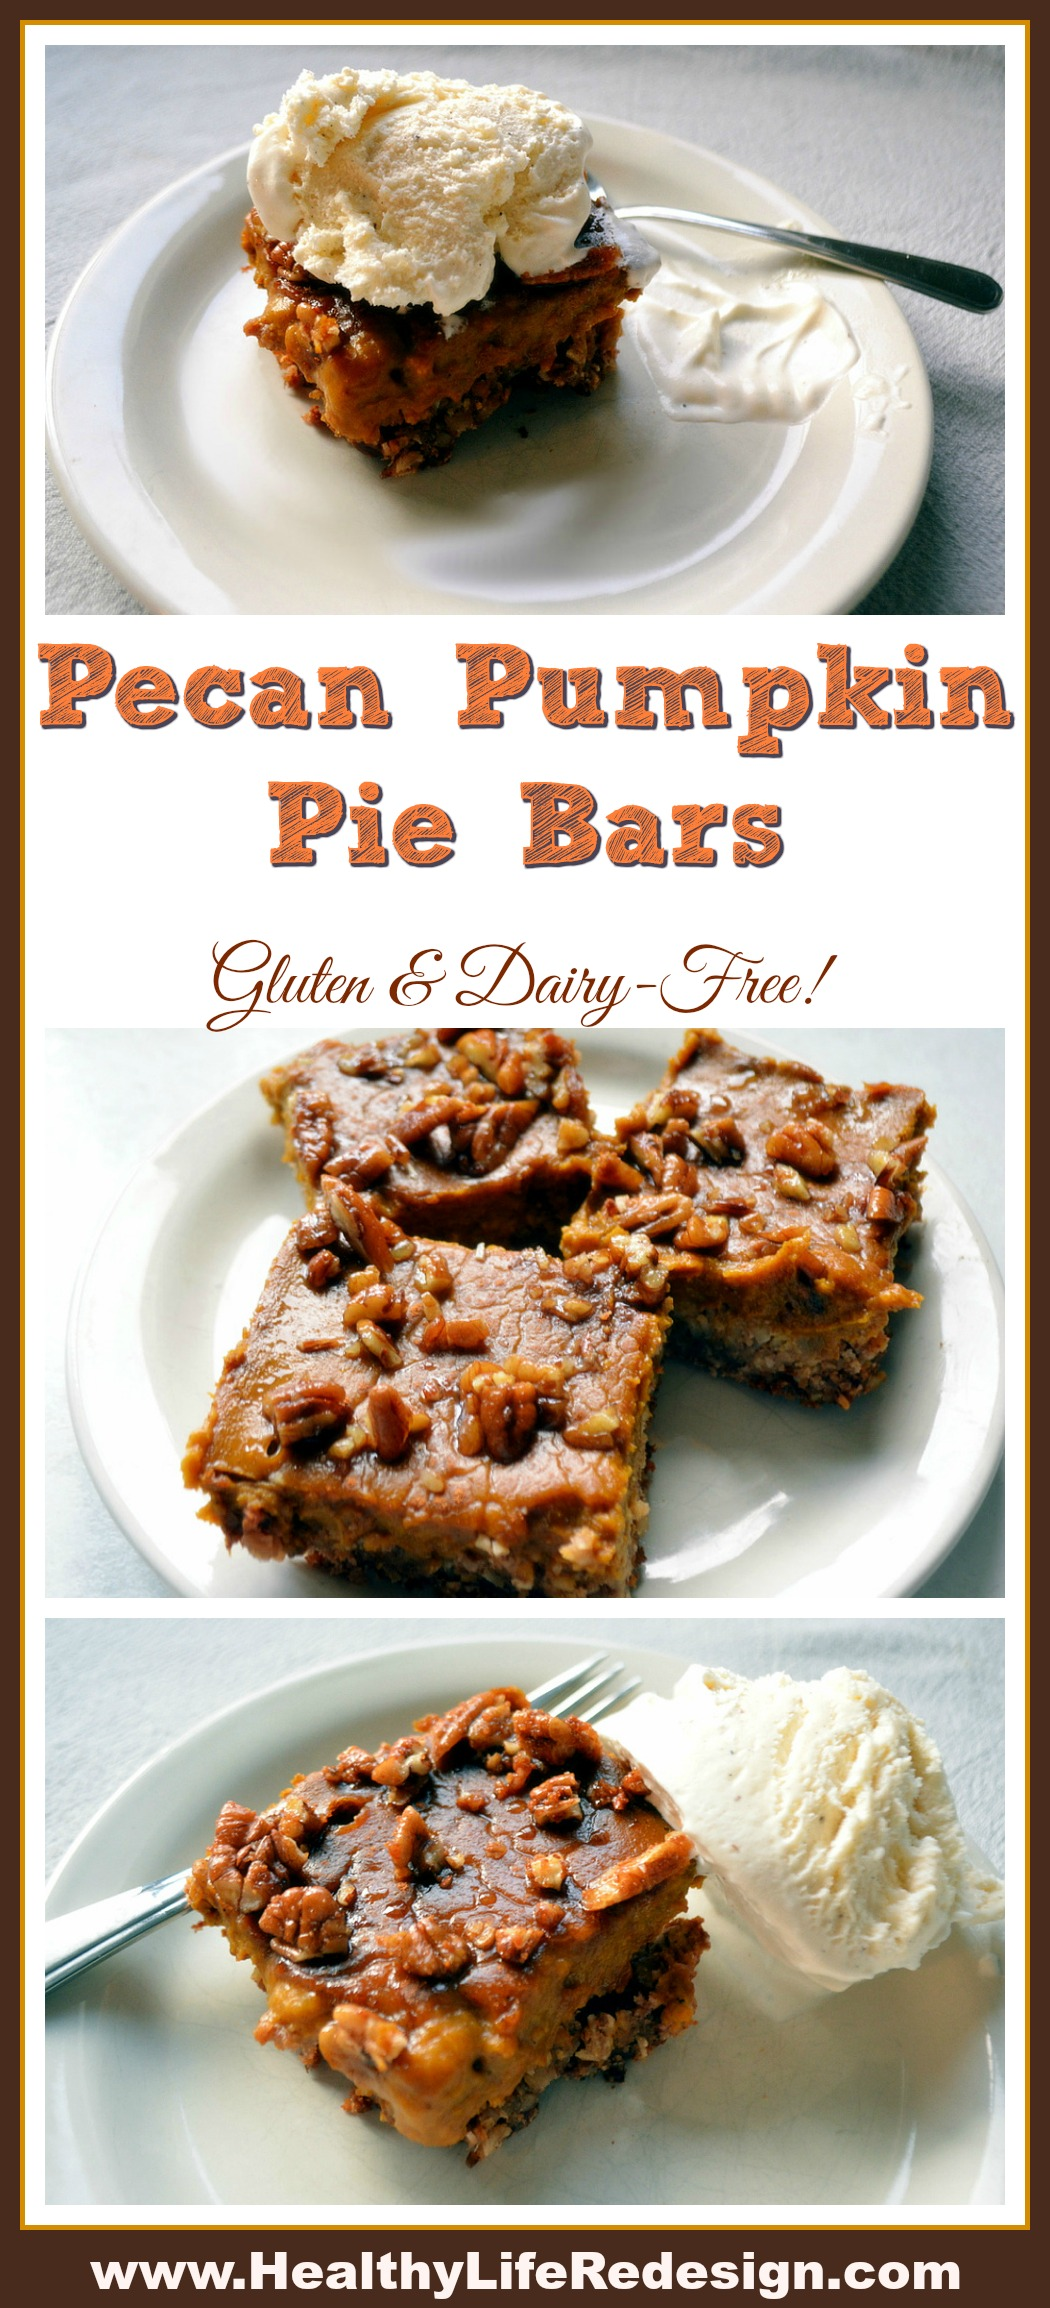 Pecan Pumpin Pie Bars - Delicious gluten and dairy-free dessert! Top with coconut ice cream for an indulgent delight!